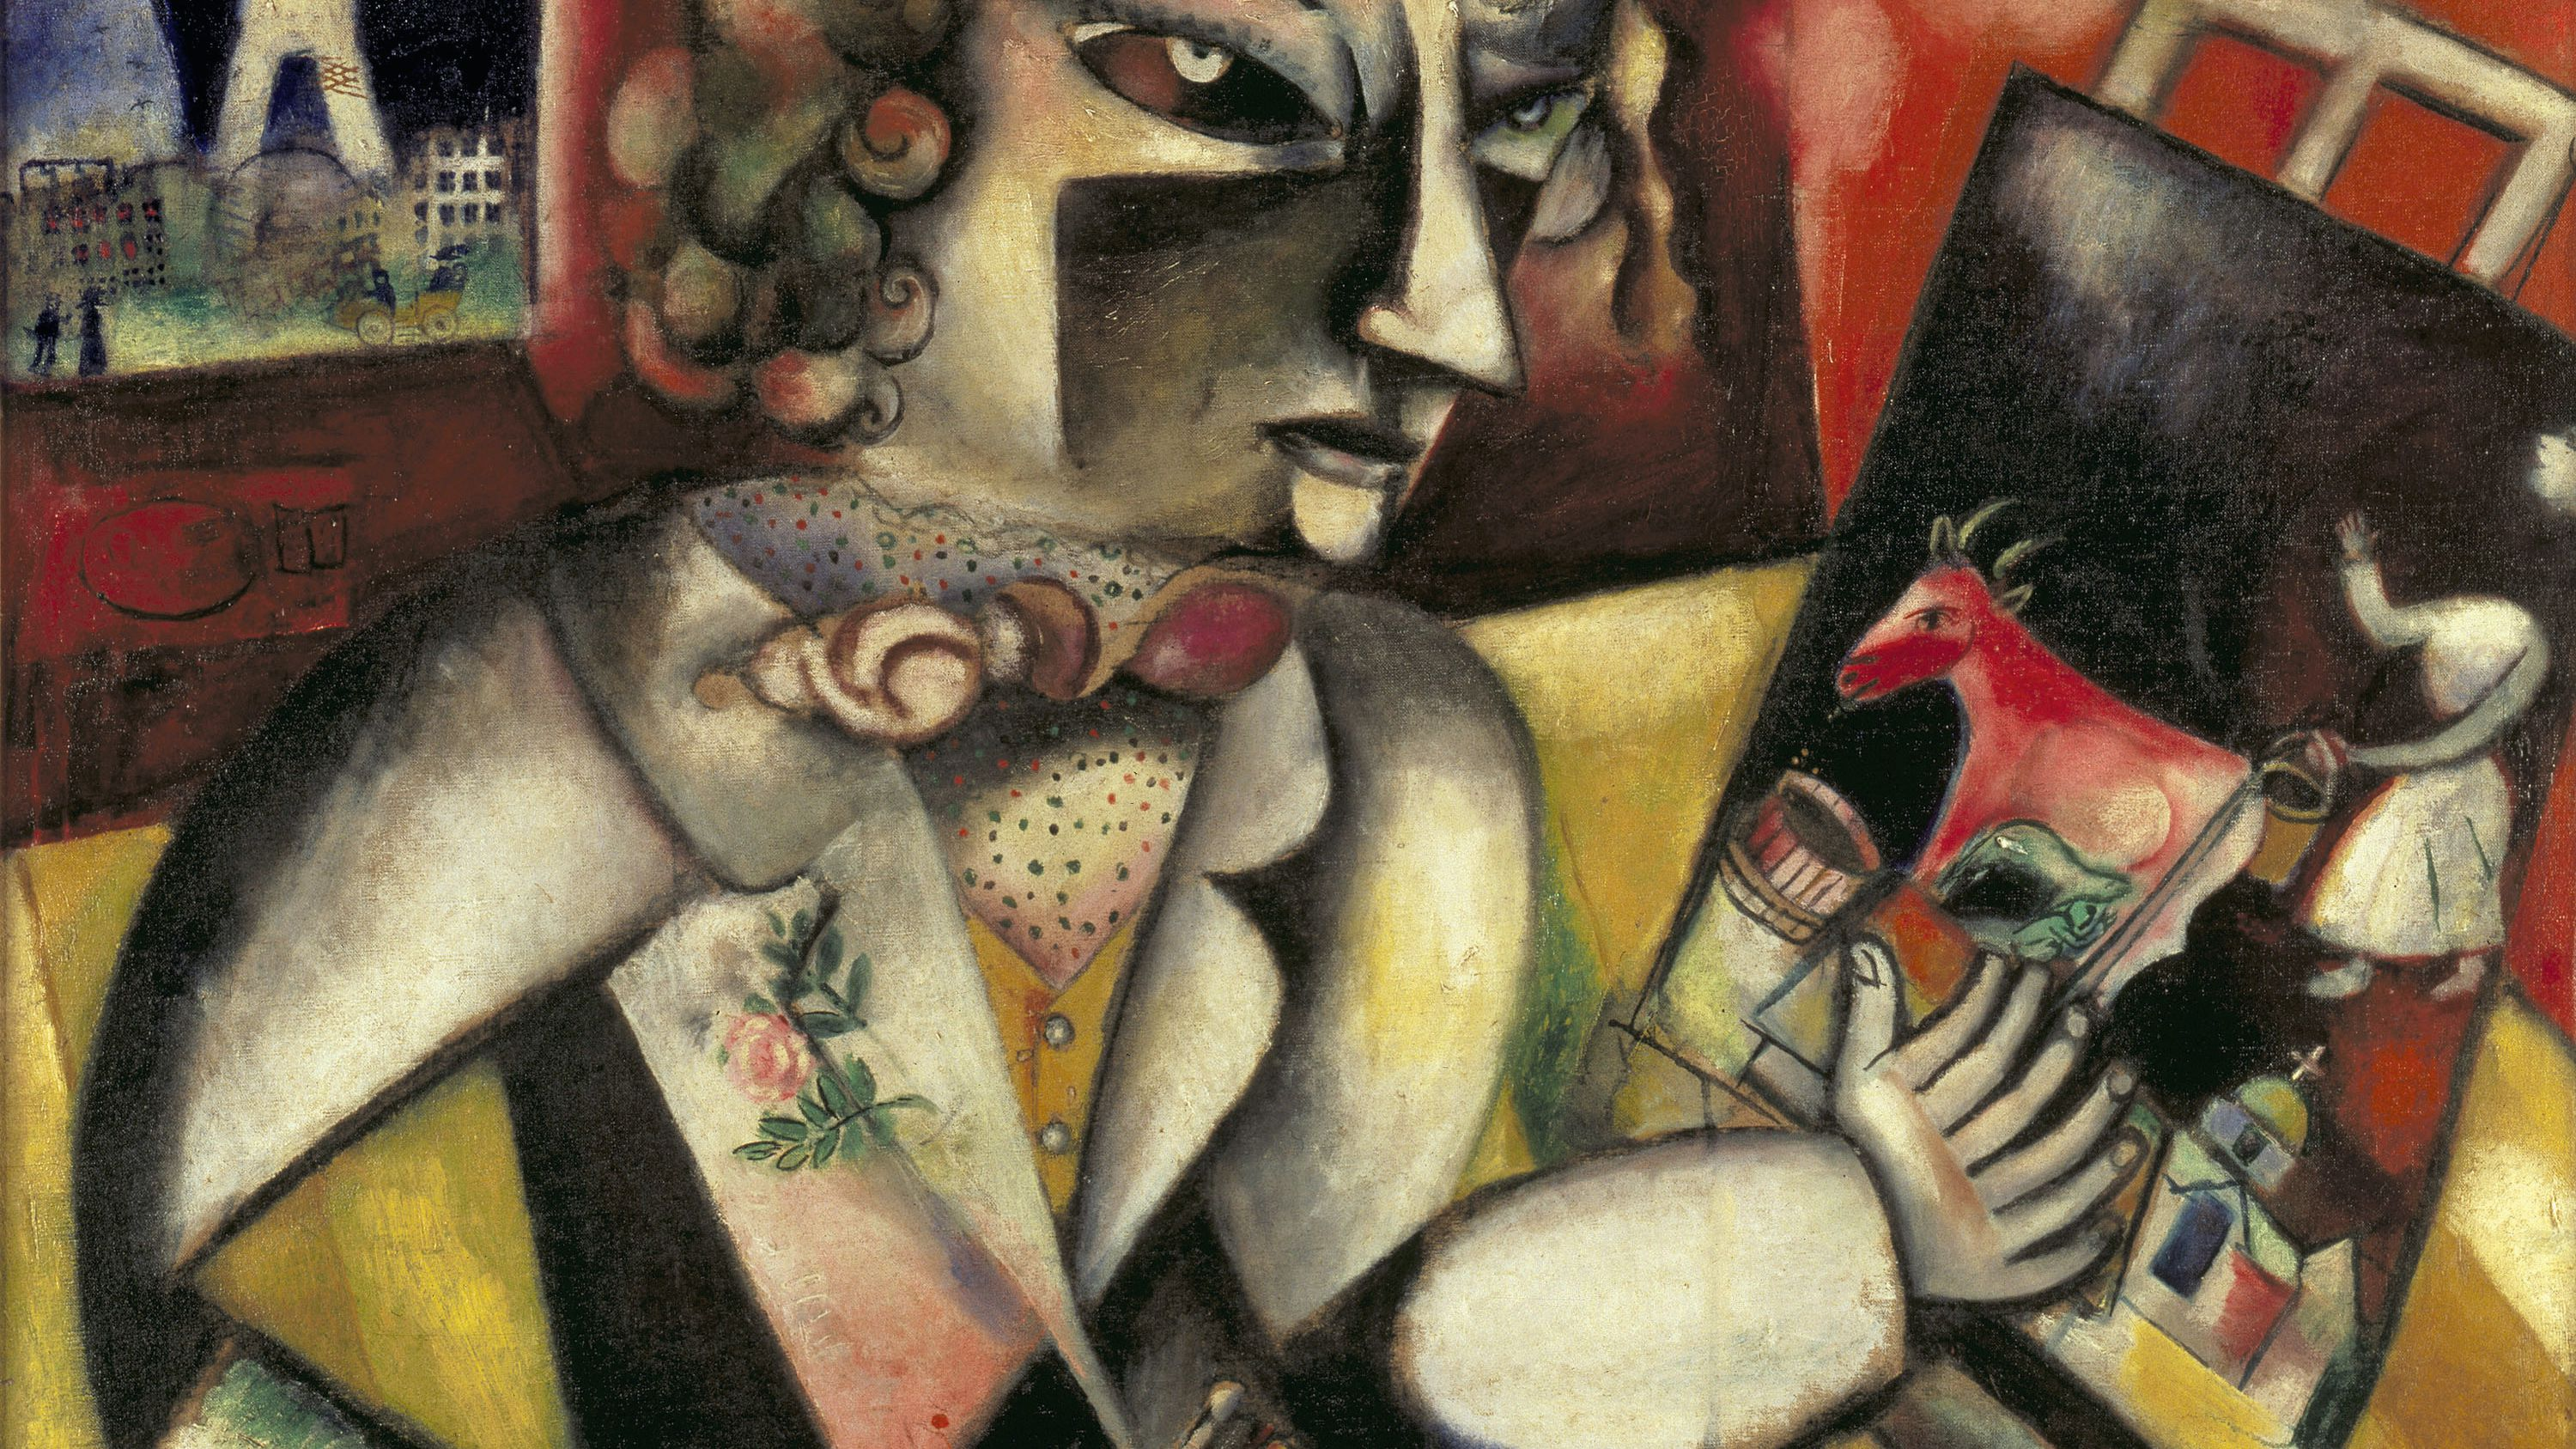 Biography of Dream and Folklore Artist Marc Chagall